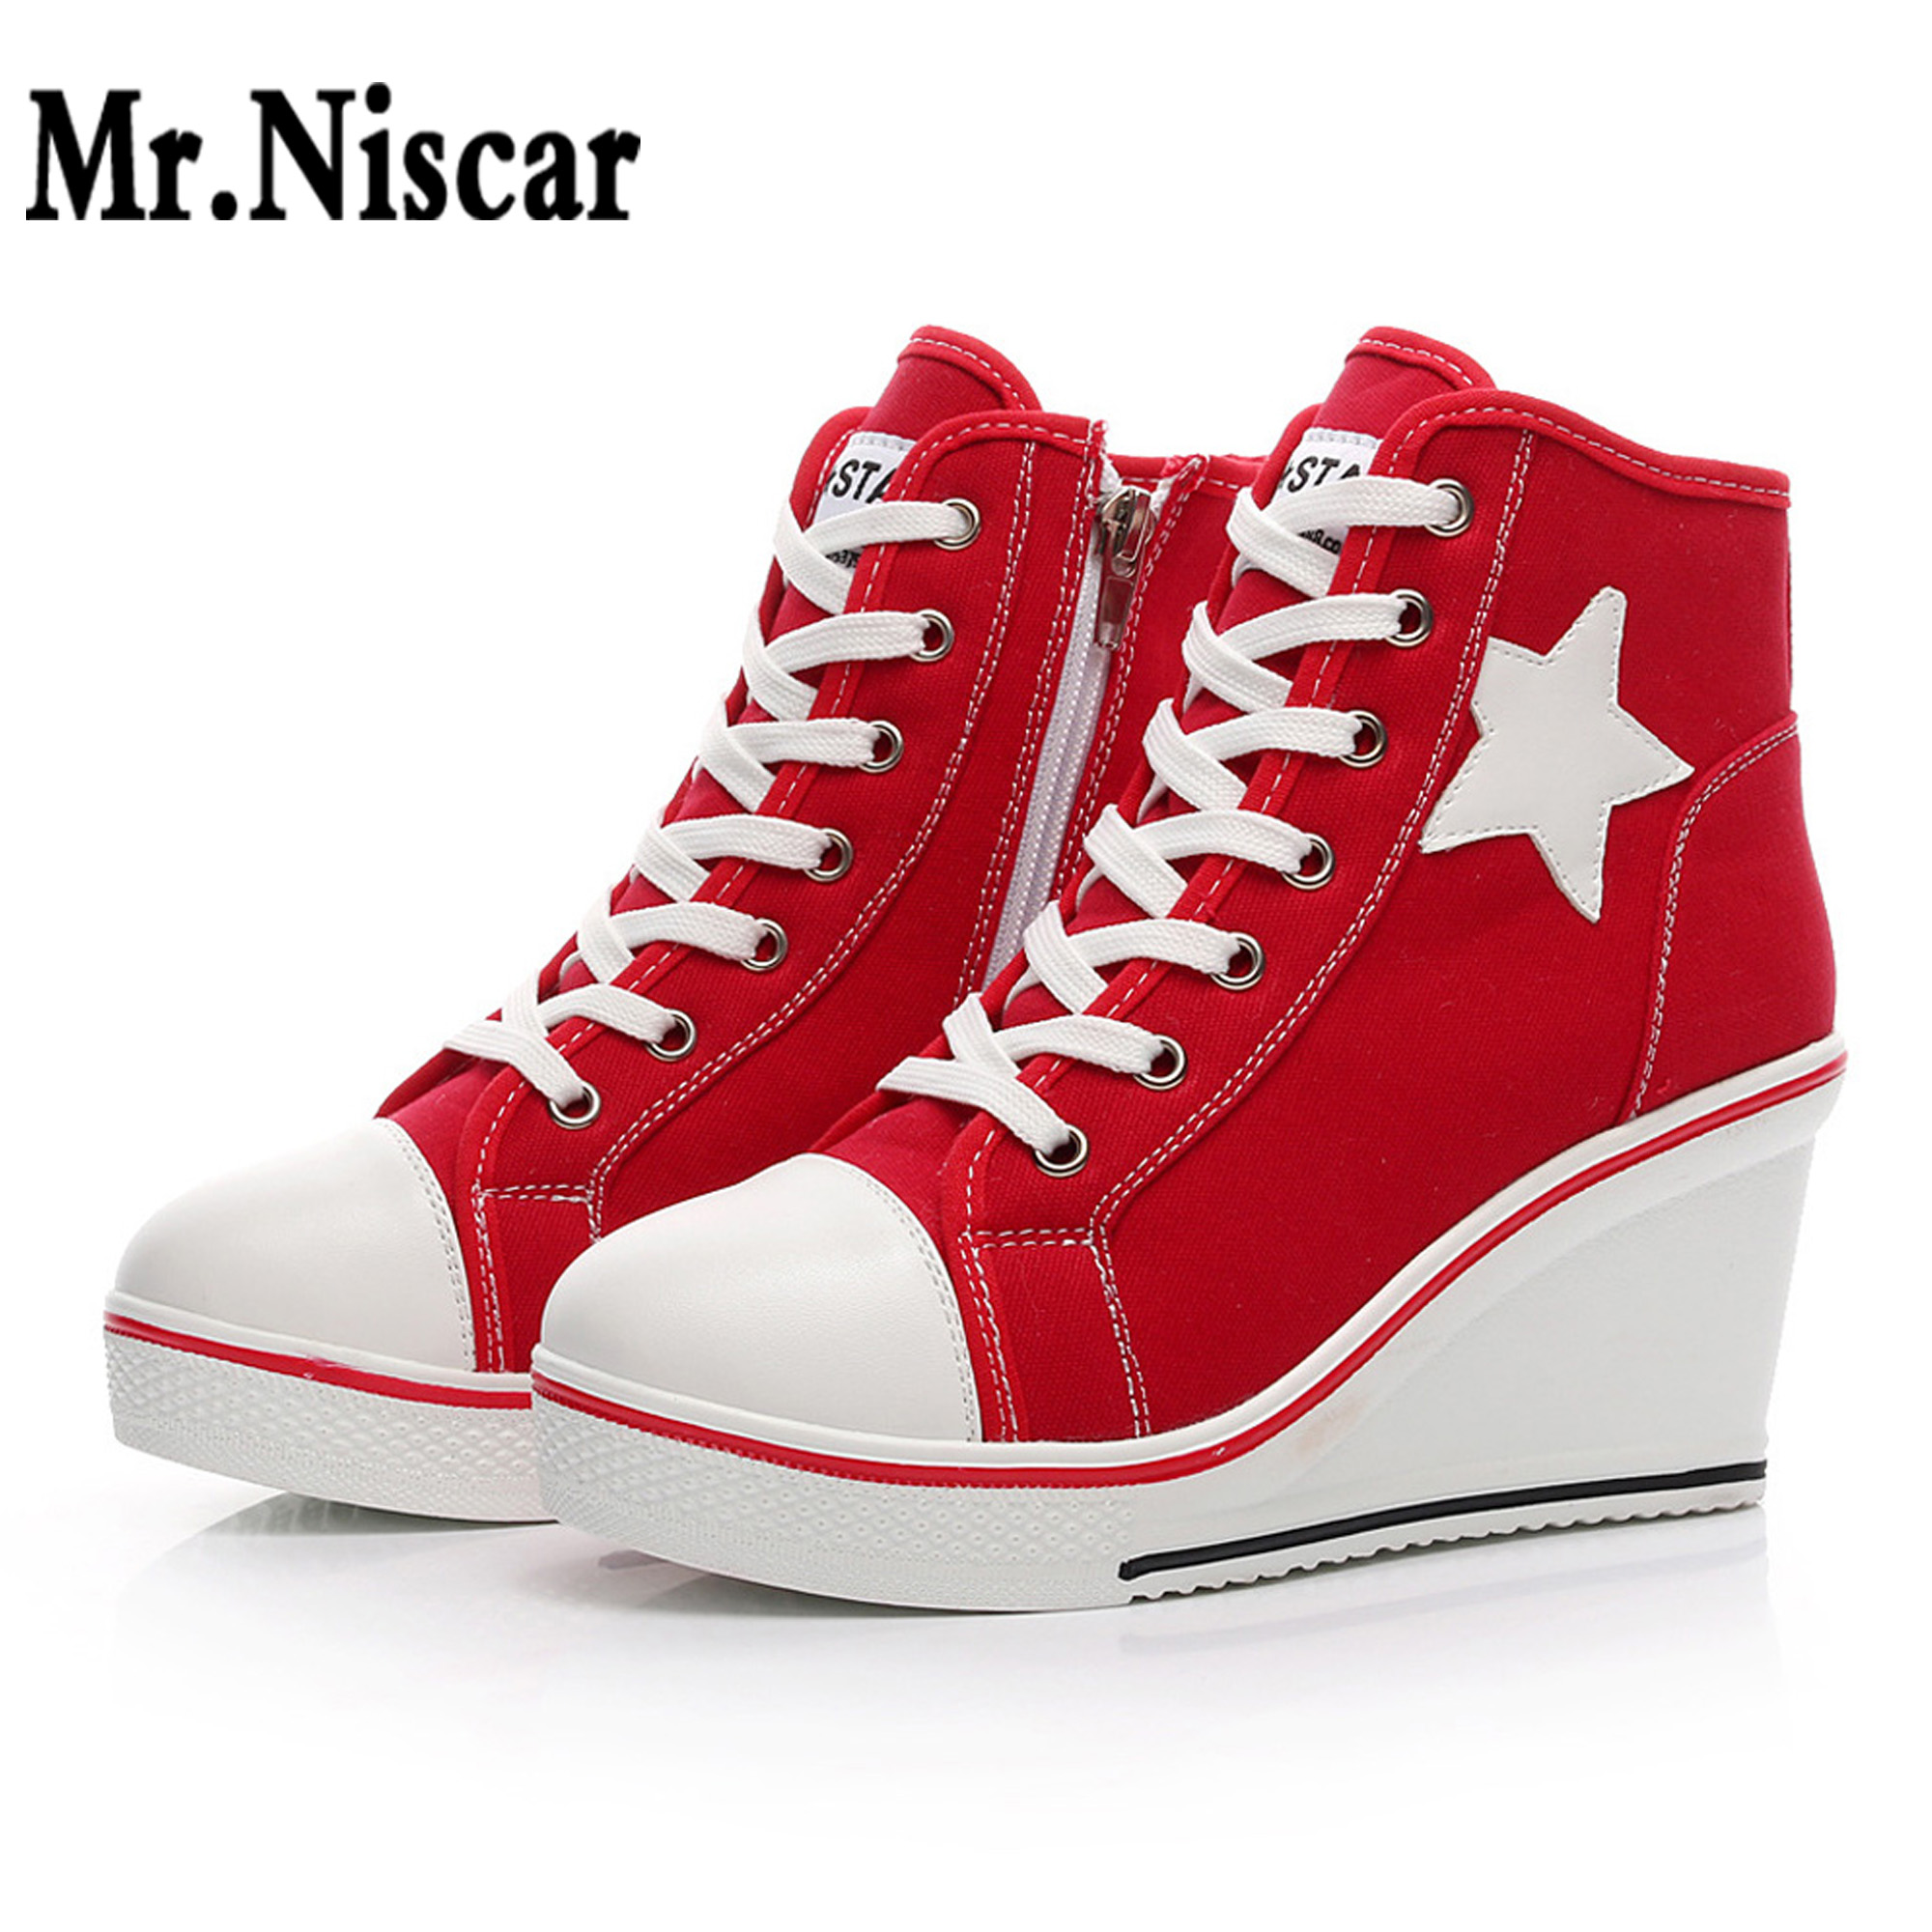 Fashion Unisex High Top Canvas Lace Up Skate Shoes Classic Comfy Round Toe Lace Up High Top Canvas Lace Up Sneakers Mr